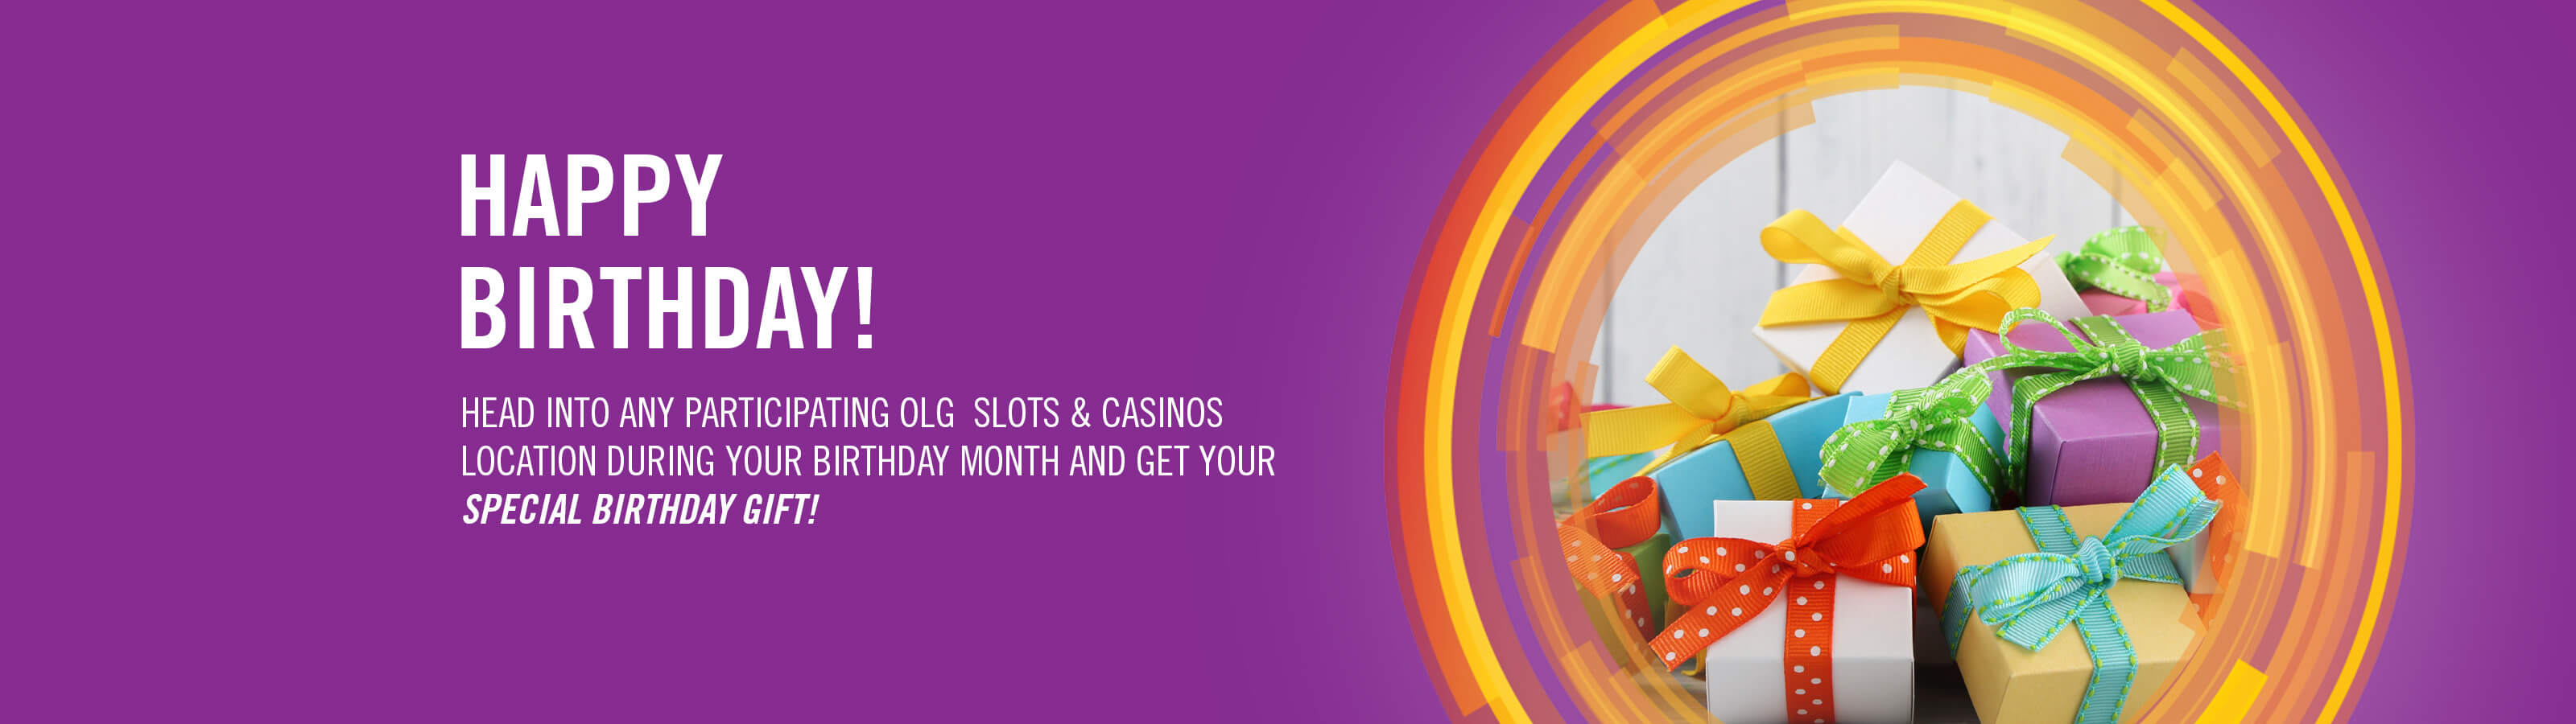 Olg slots and casinos tennesse casino